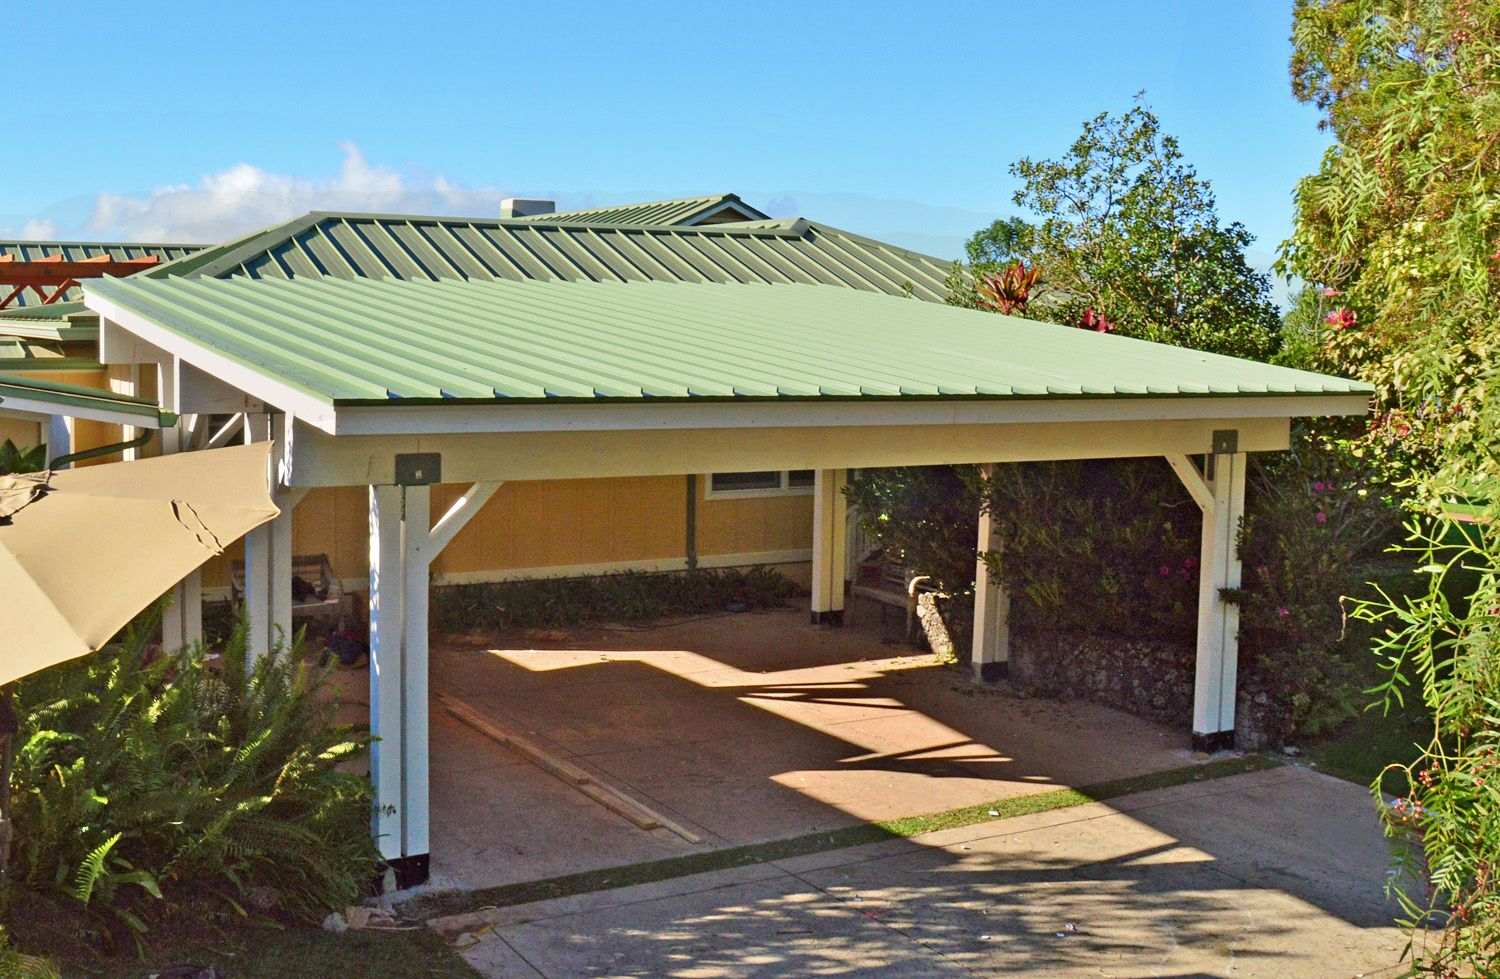 medium resolution of carport pavilion options 21ft standard car depth x 28 ft two cars quantity large redwood no electrical wiring trim 8ft h front post with 9 5 ft h back